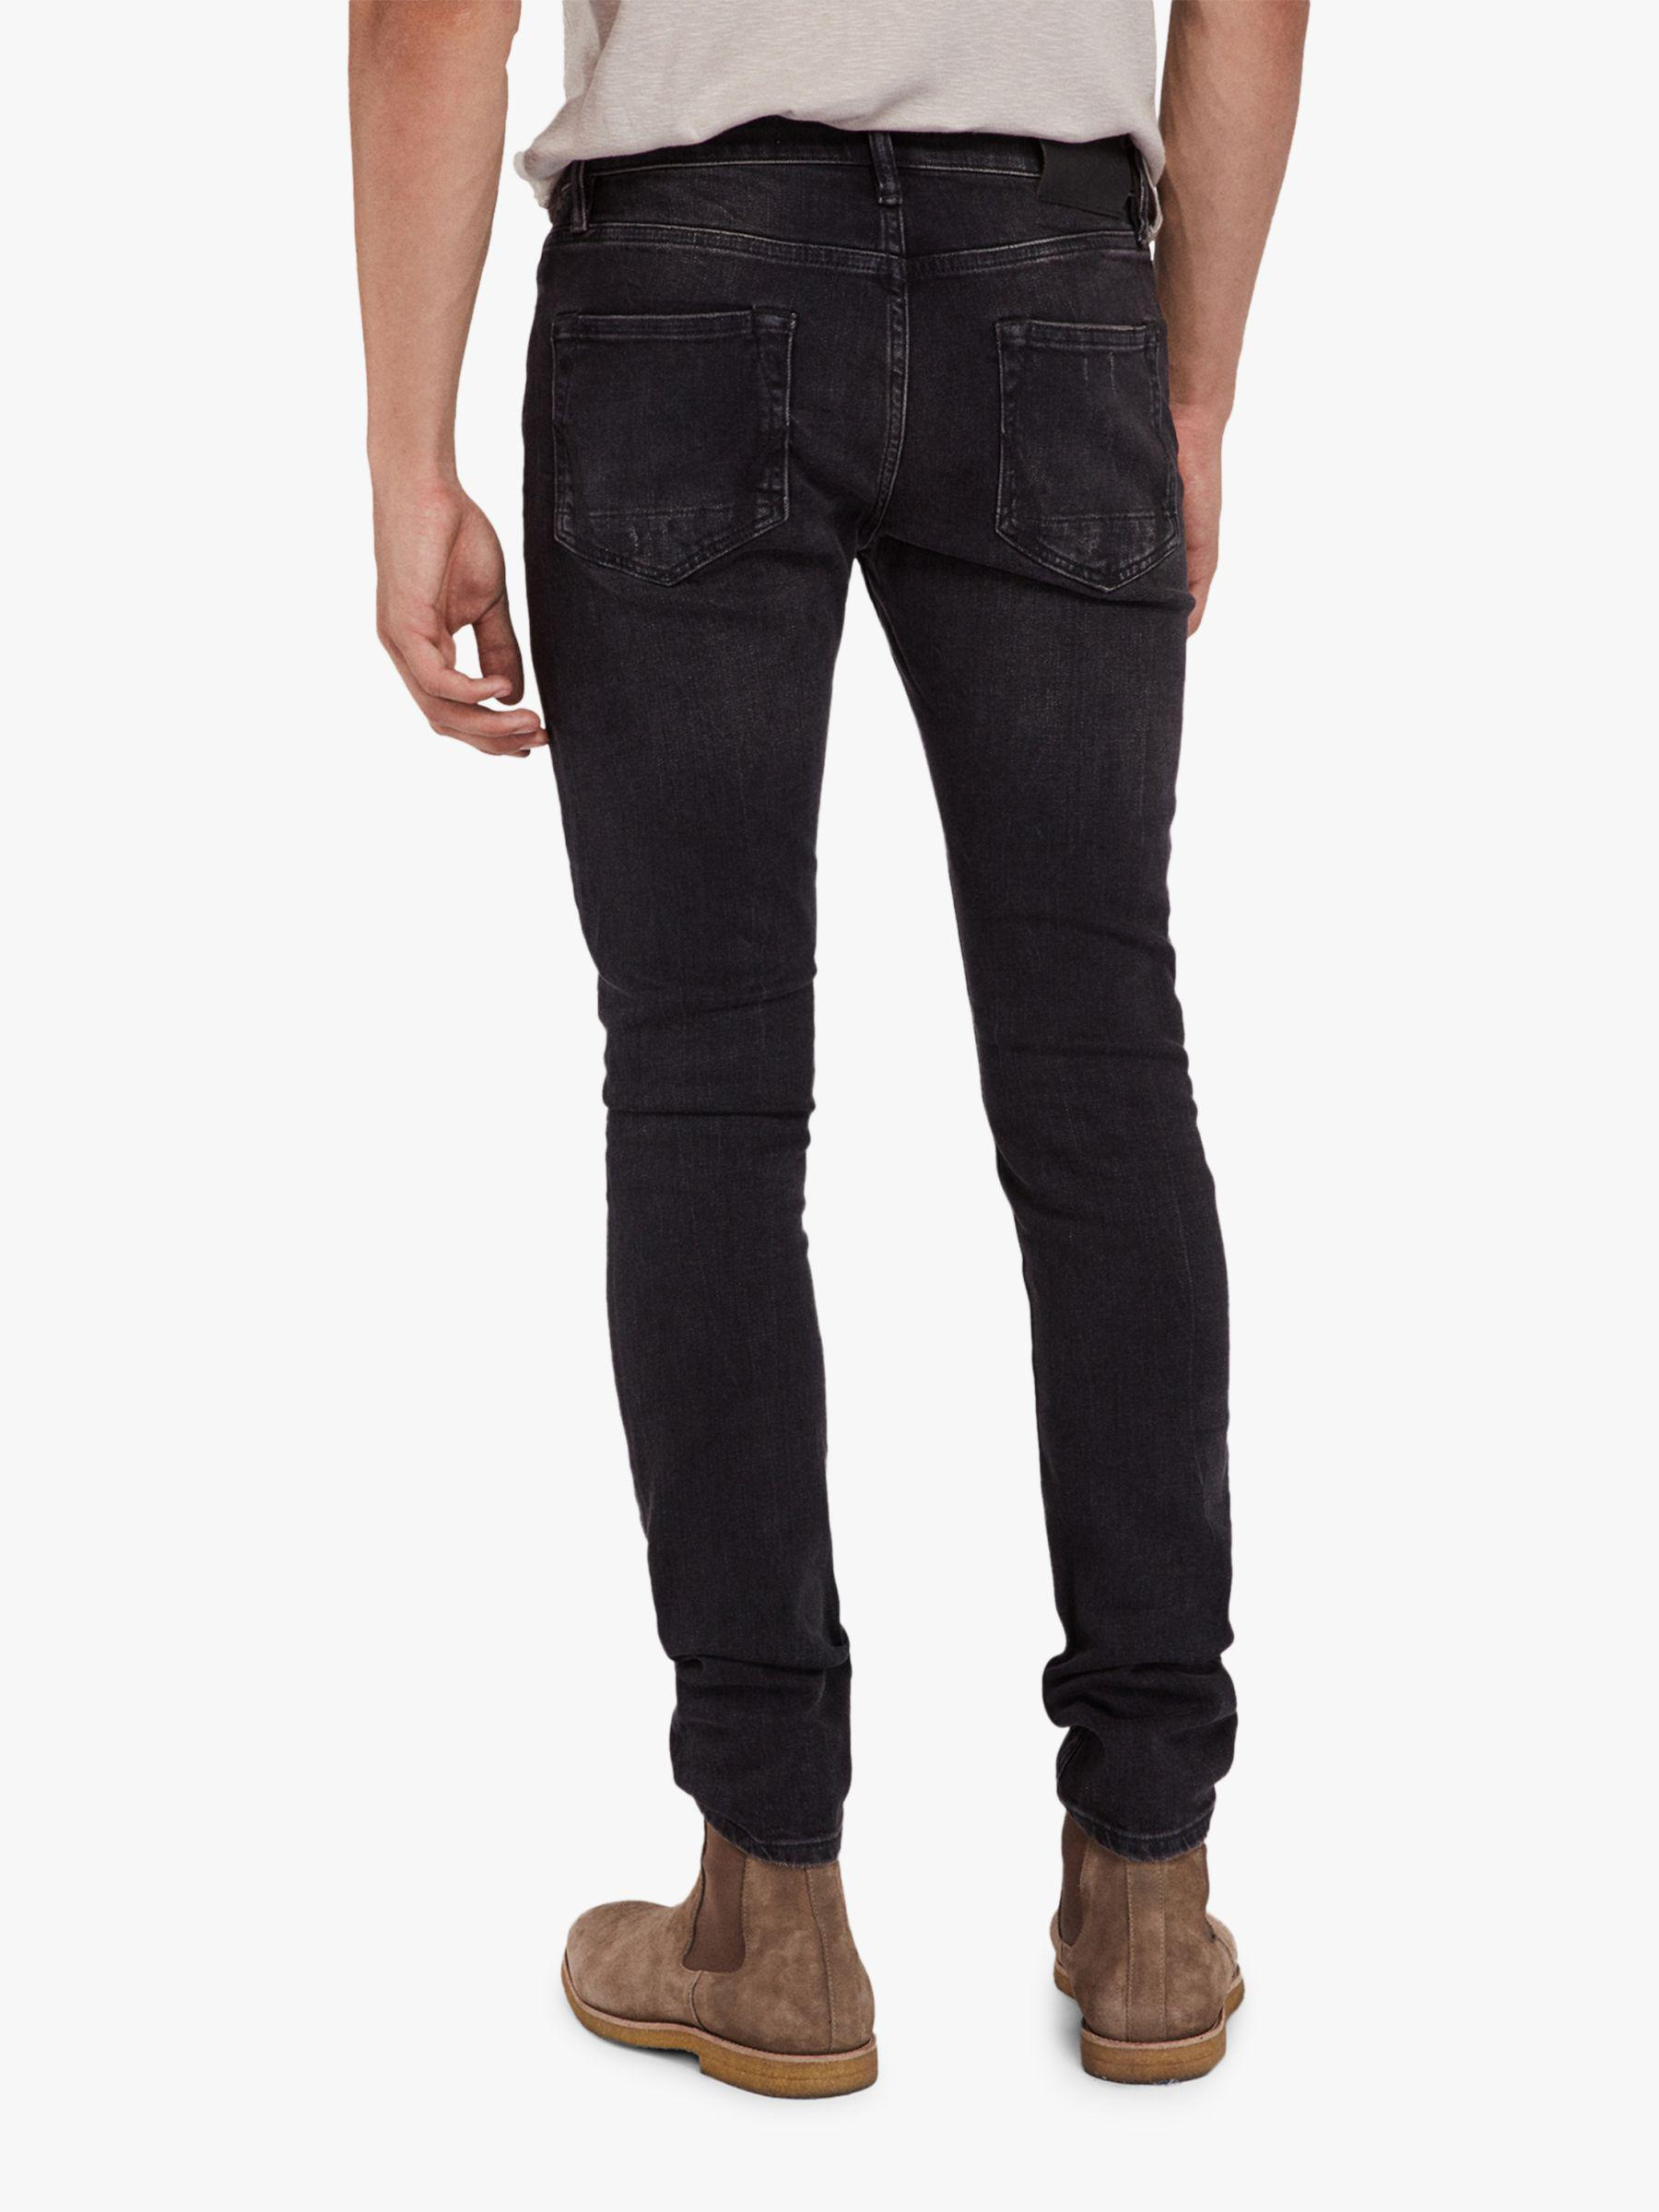 Allsaints Fit Skinny Jeans Lyst Black Rex In Men For Straight rqatrwv 6863c54ee33f7